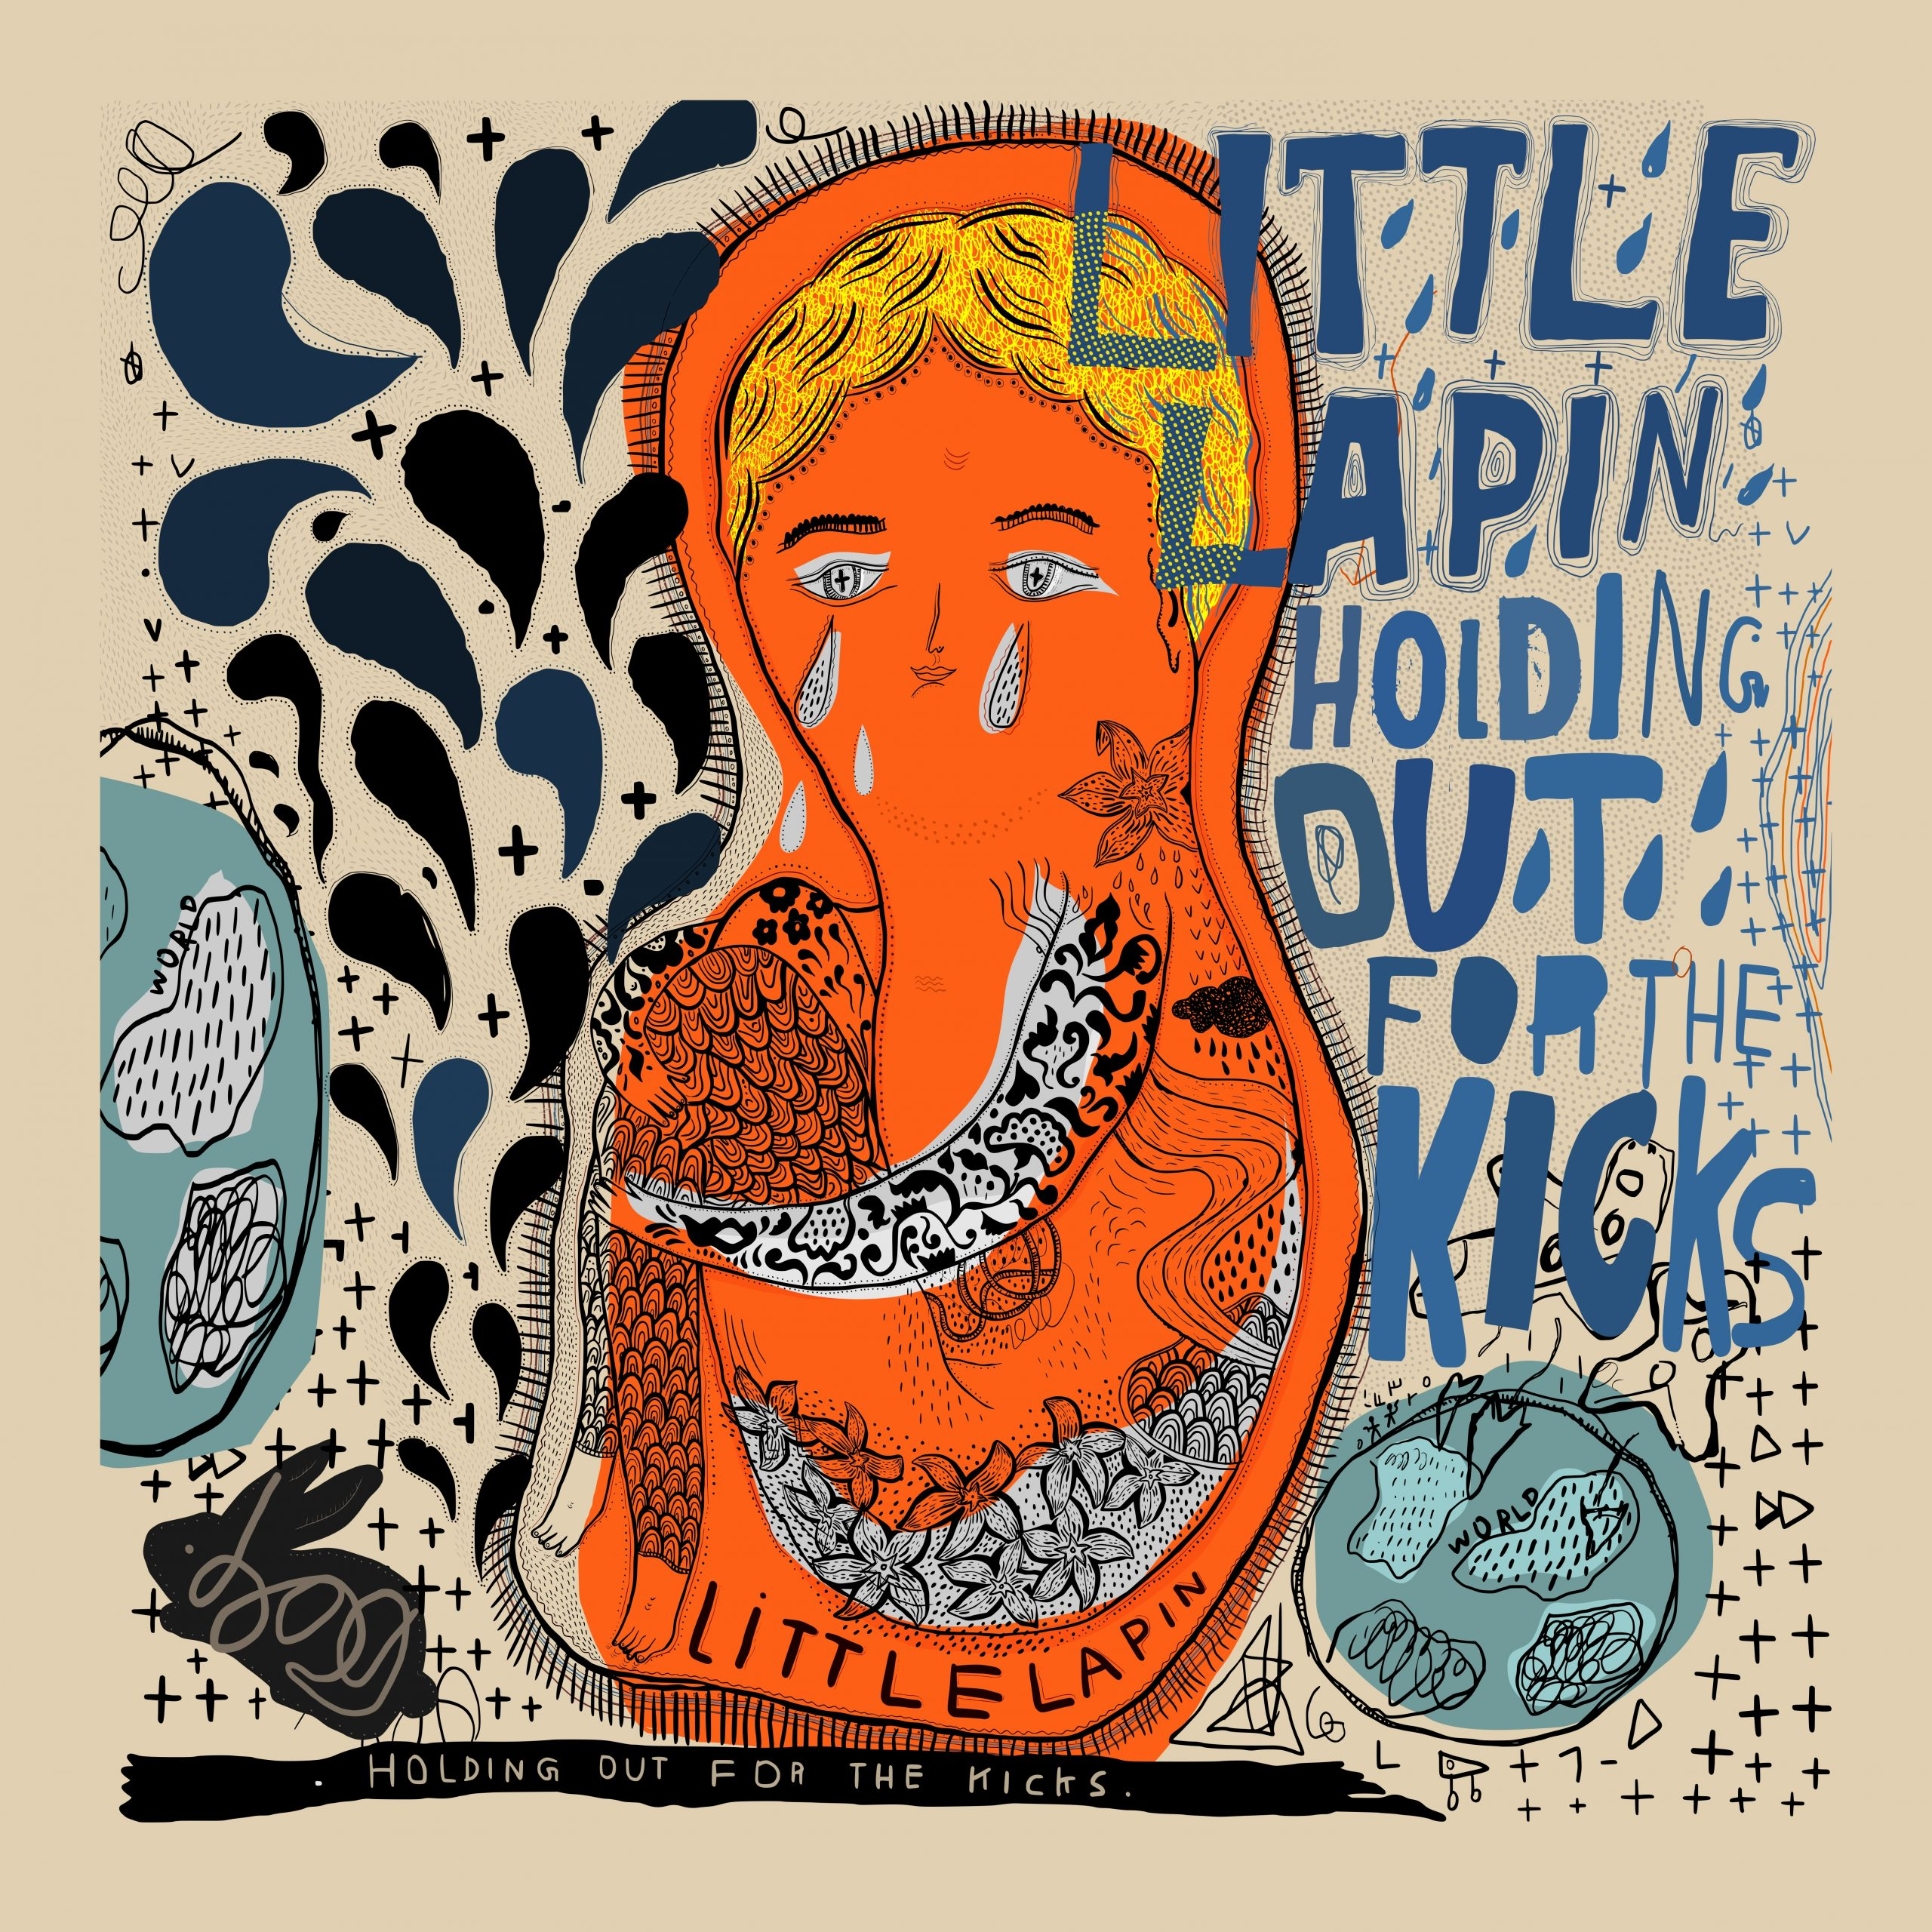 Review of 'Holding Out For The Kicks' album by Little Lapin (releases 16th July 2016)